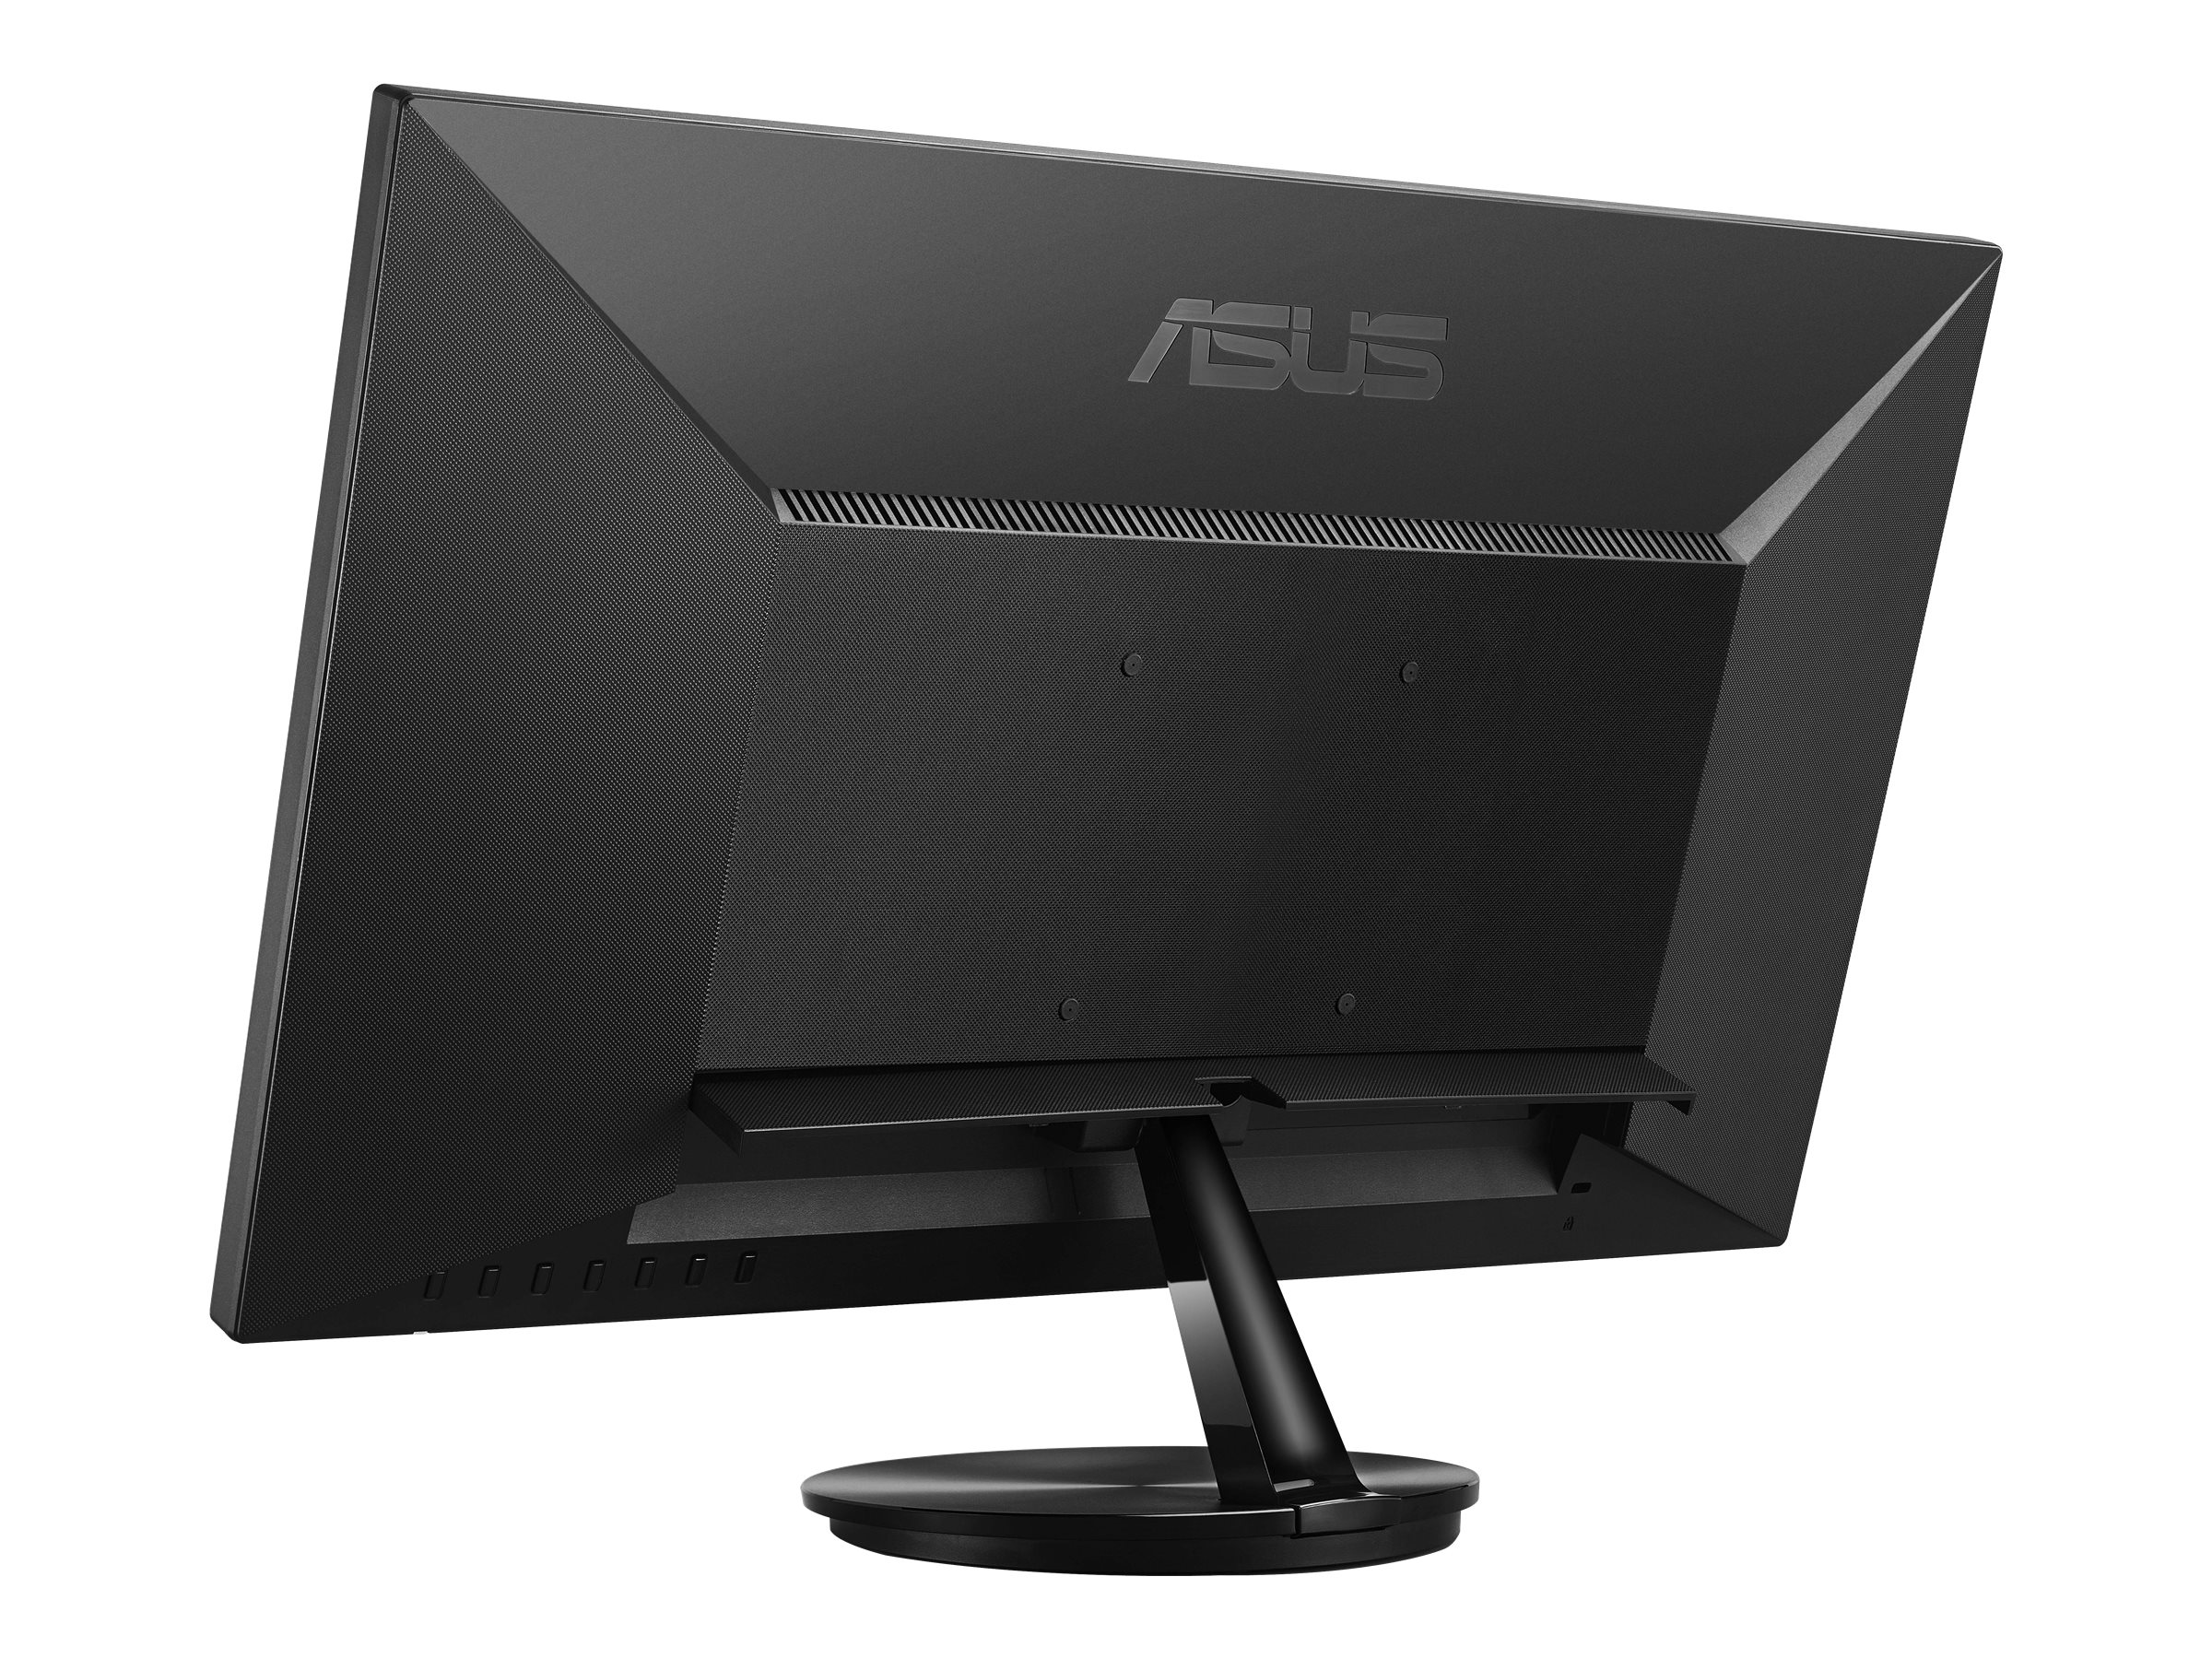 Asus 23.8 VN248Q-P Full HD LED-LCD Monitor, Black, 90LM00D0-B031B0